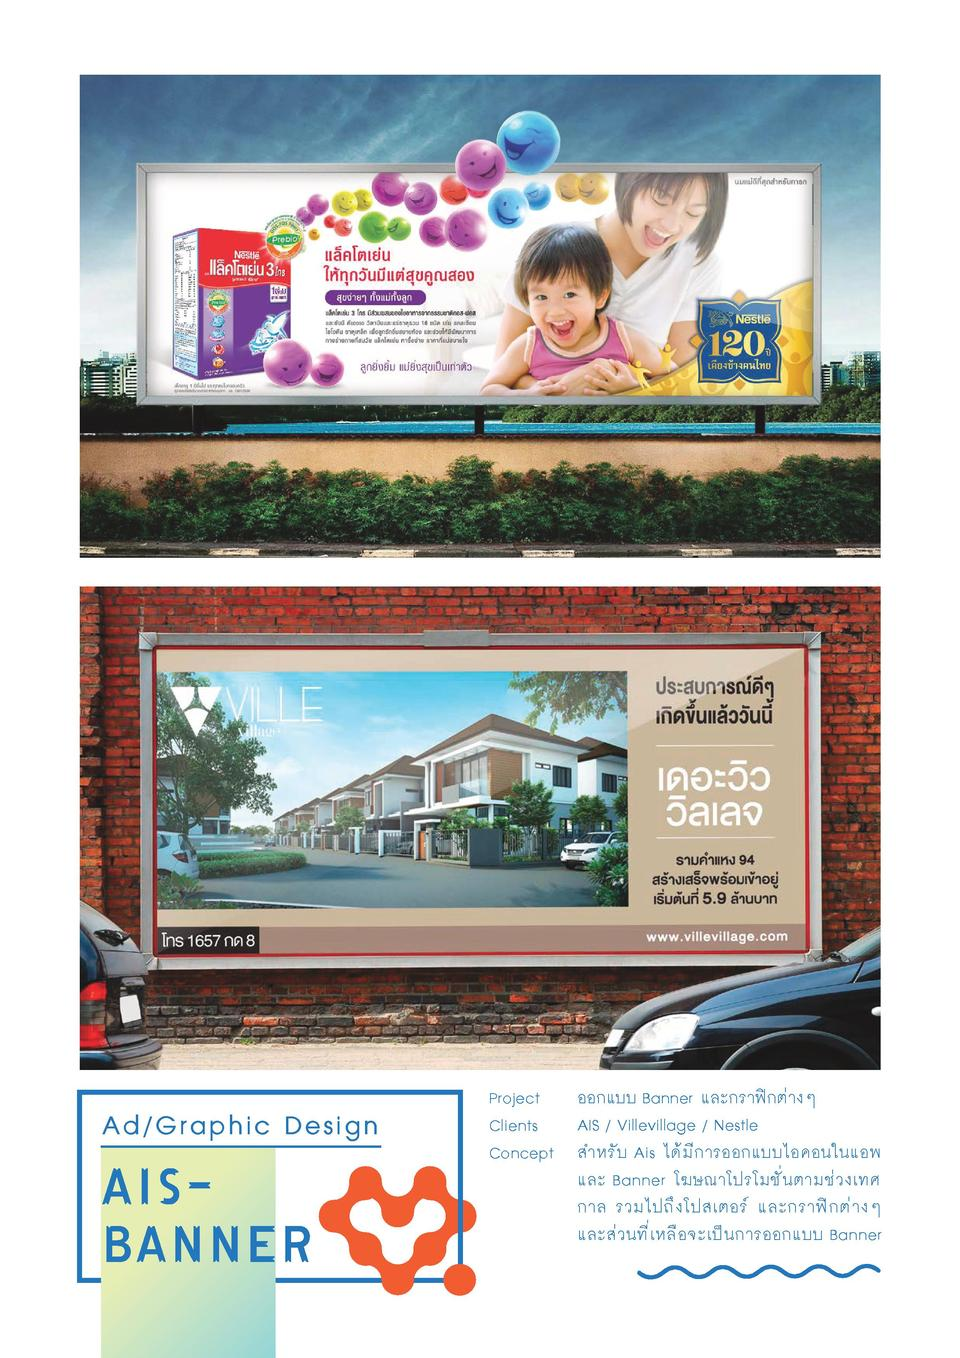 Ad Graphic Design  aisbanner  Project                    Banner                                      Clients AIS   Villevi...